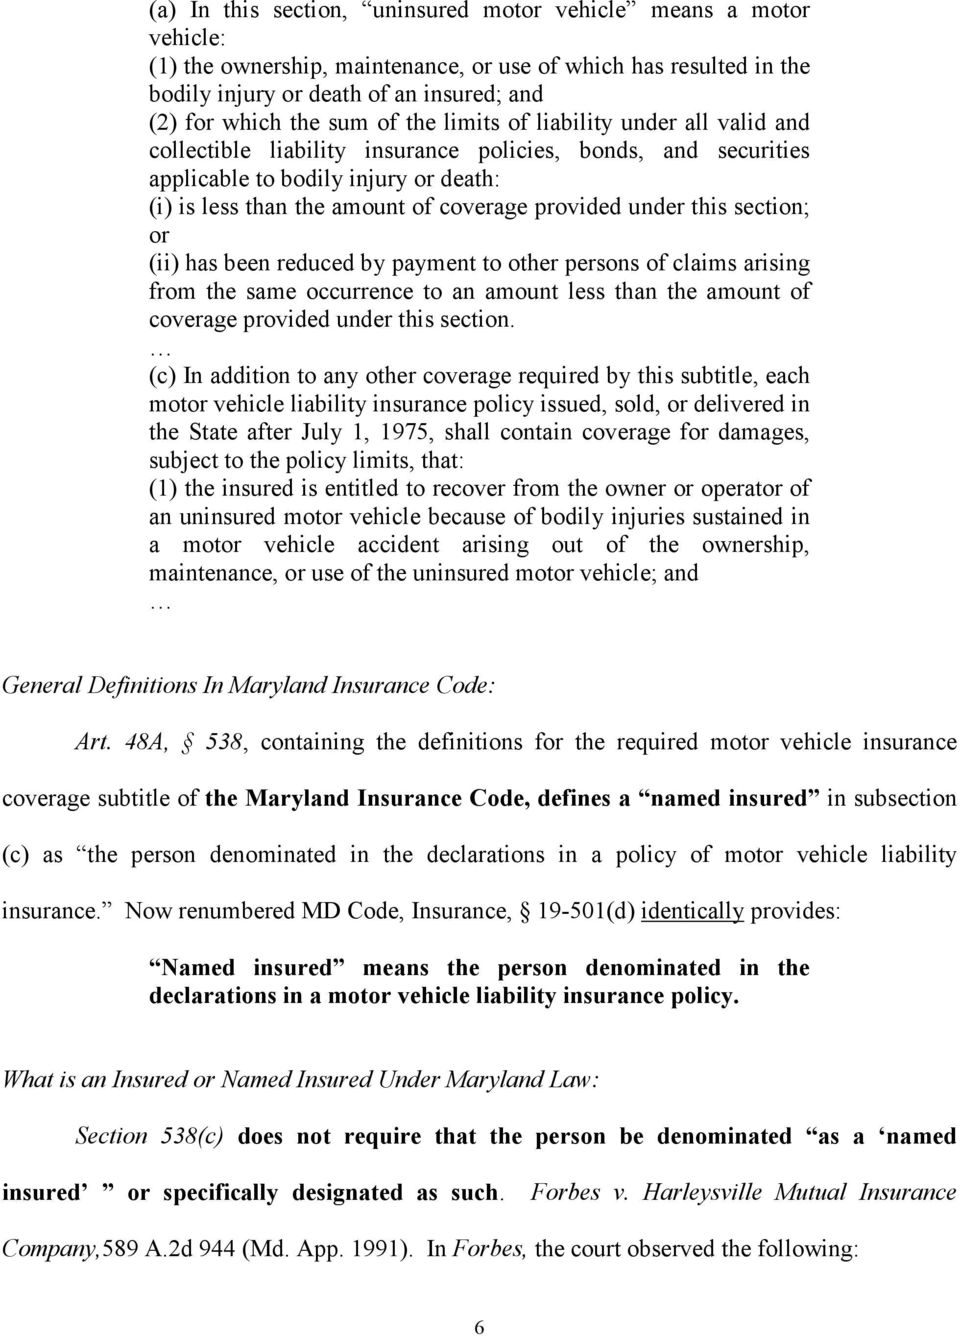 under this section; or (ii) has been reduced by payment to other persons of claims arising from the same occurrence to an amount less than the amount of coverage provided under this section.